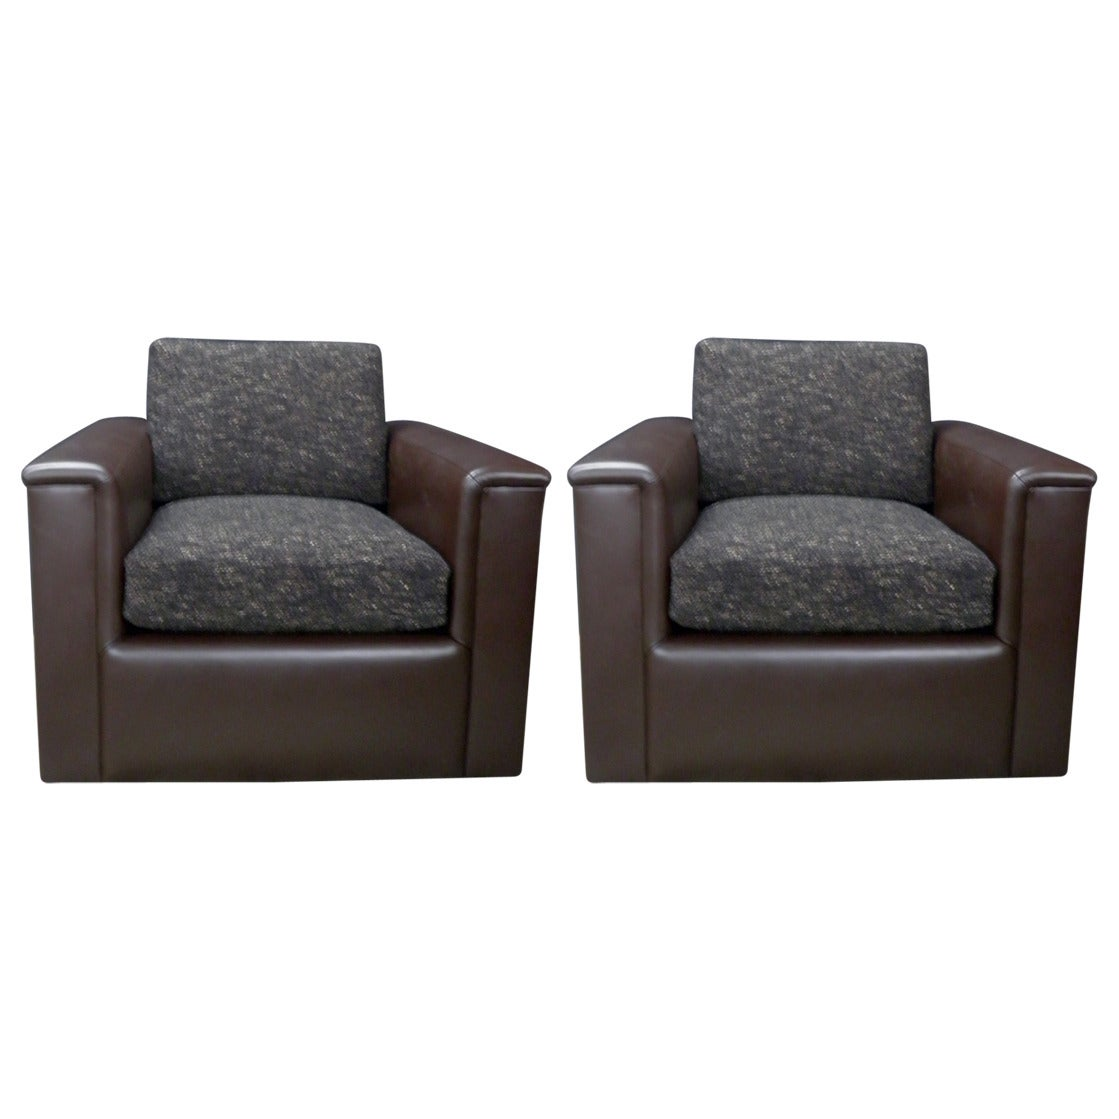 Refurbished Chairs Fully Refurbished Pair Of Very Comfortable Club Chairs On Casters And Swivels